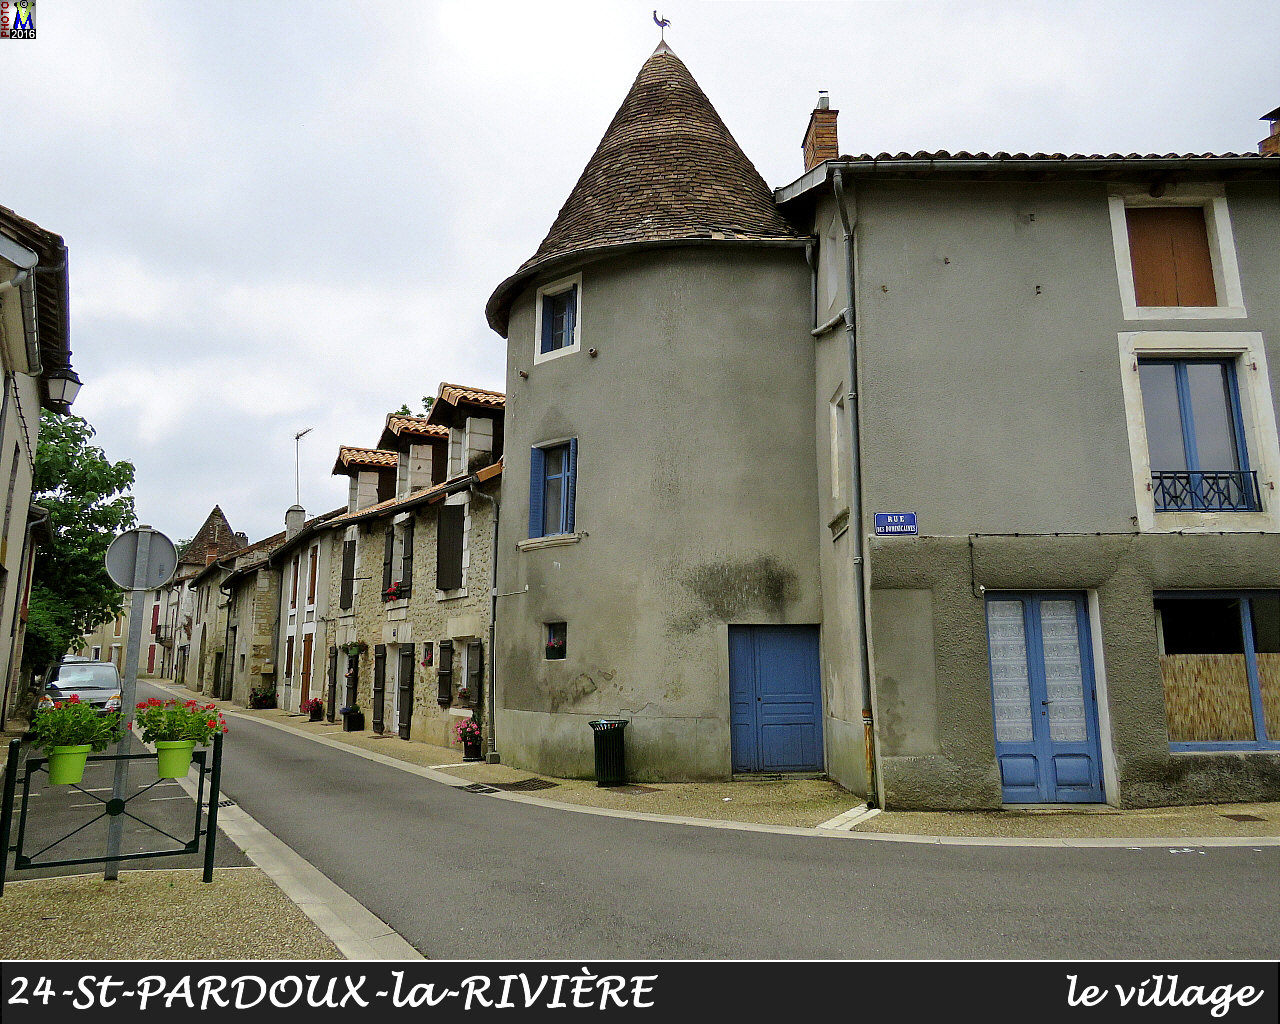 24StPARDOUX-LR_village_1014.jpg